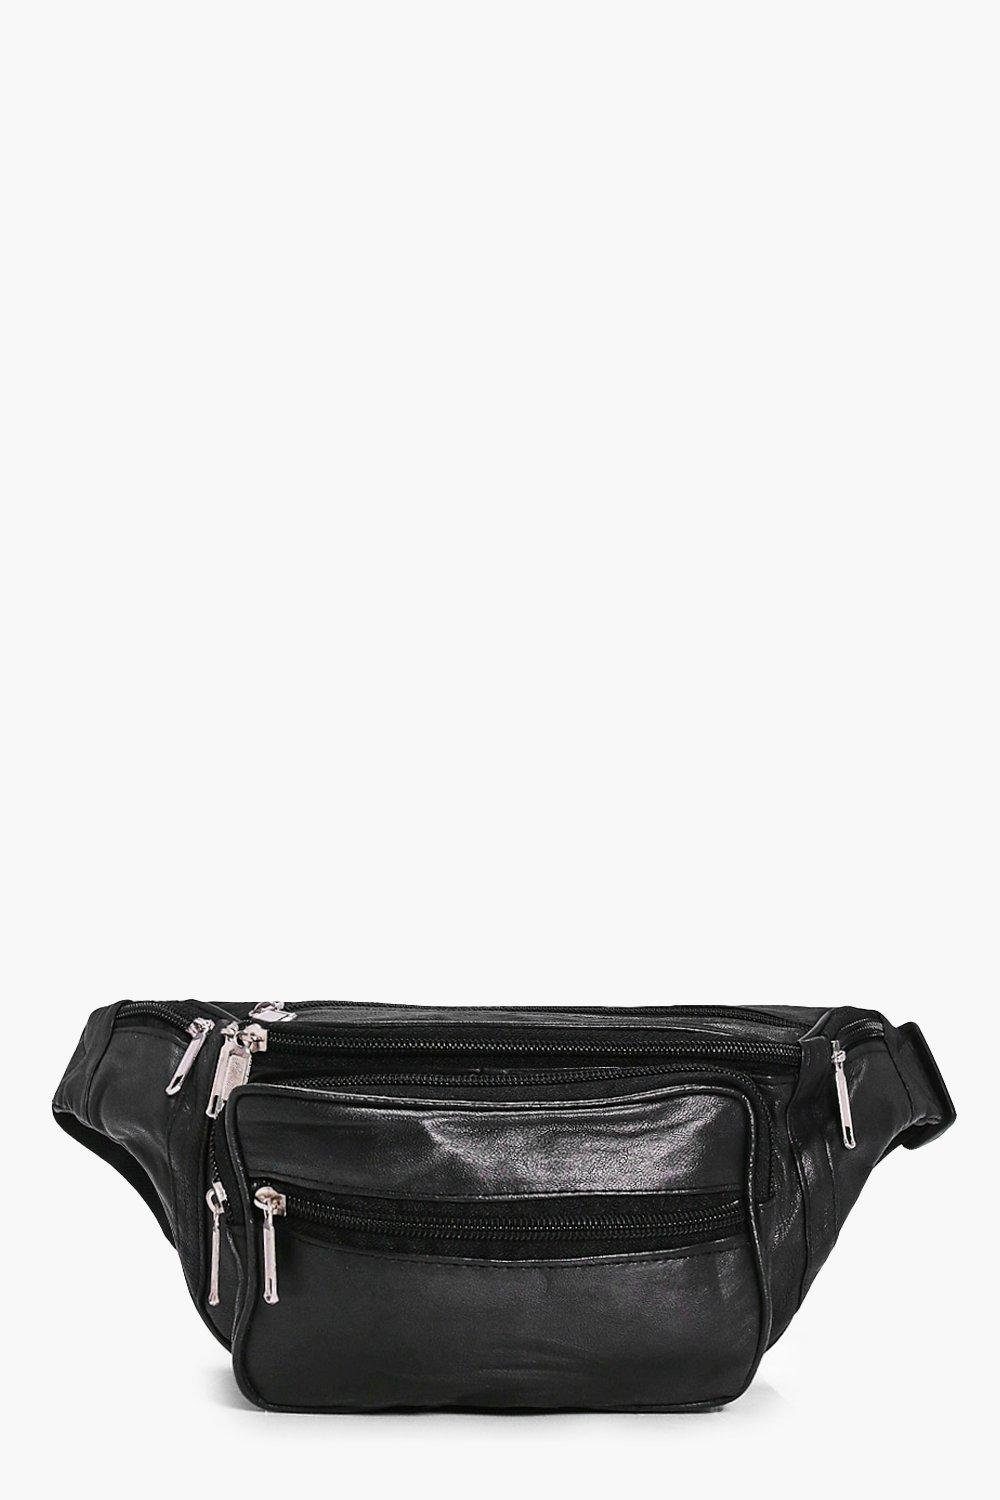 Zip Pocket Front Leather Bumbag - black - Lucia Zi